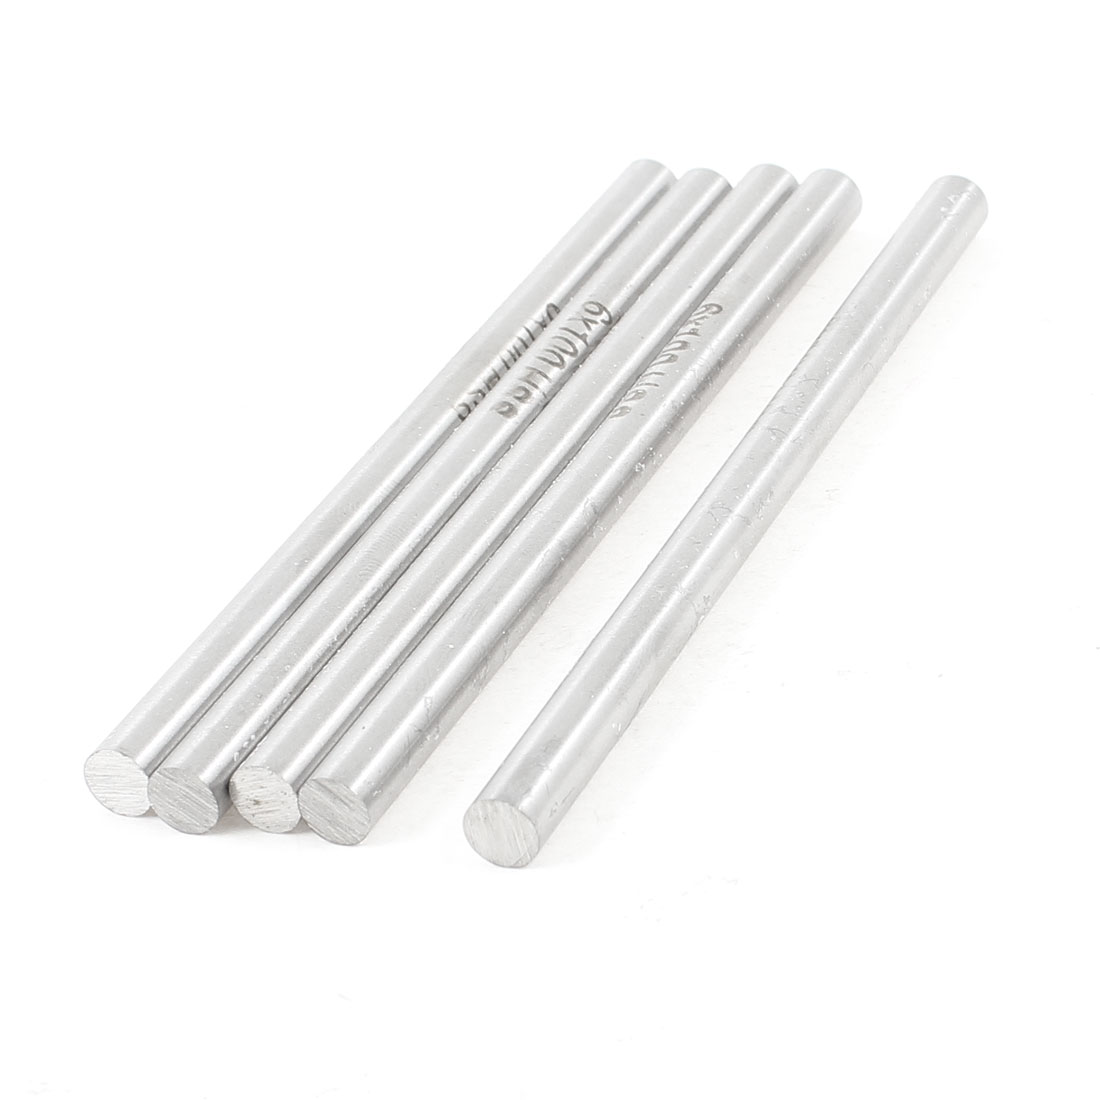 5 Pcs 6mm x 100mm HSS High Speed Steel Turning Bars for CNC Lathe